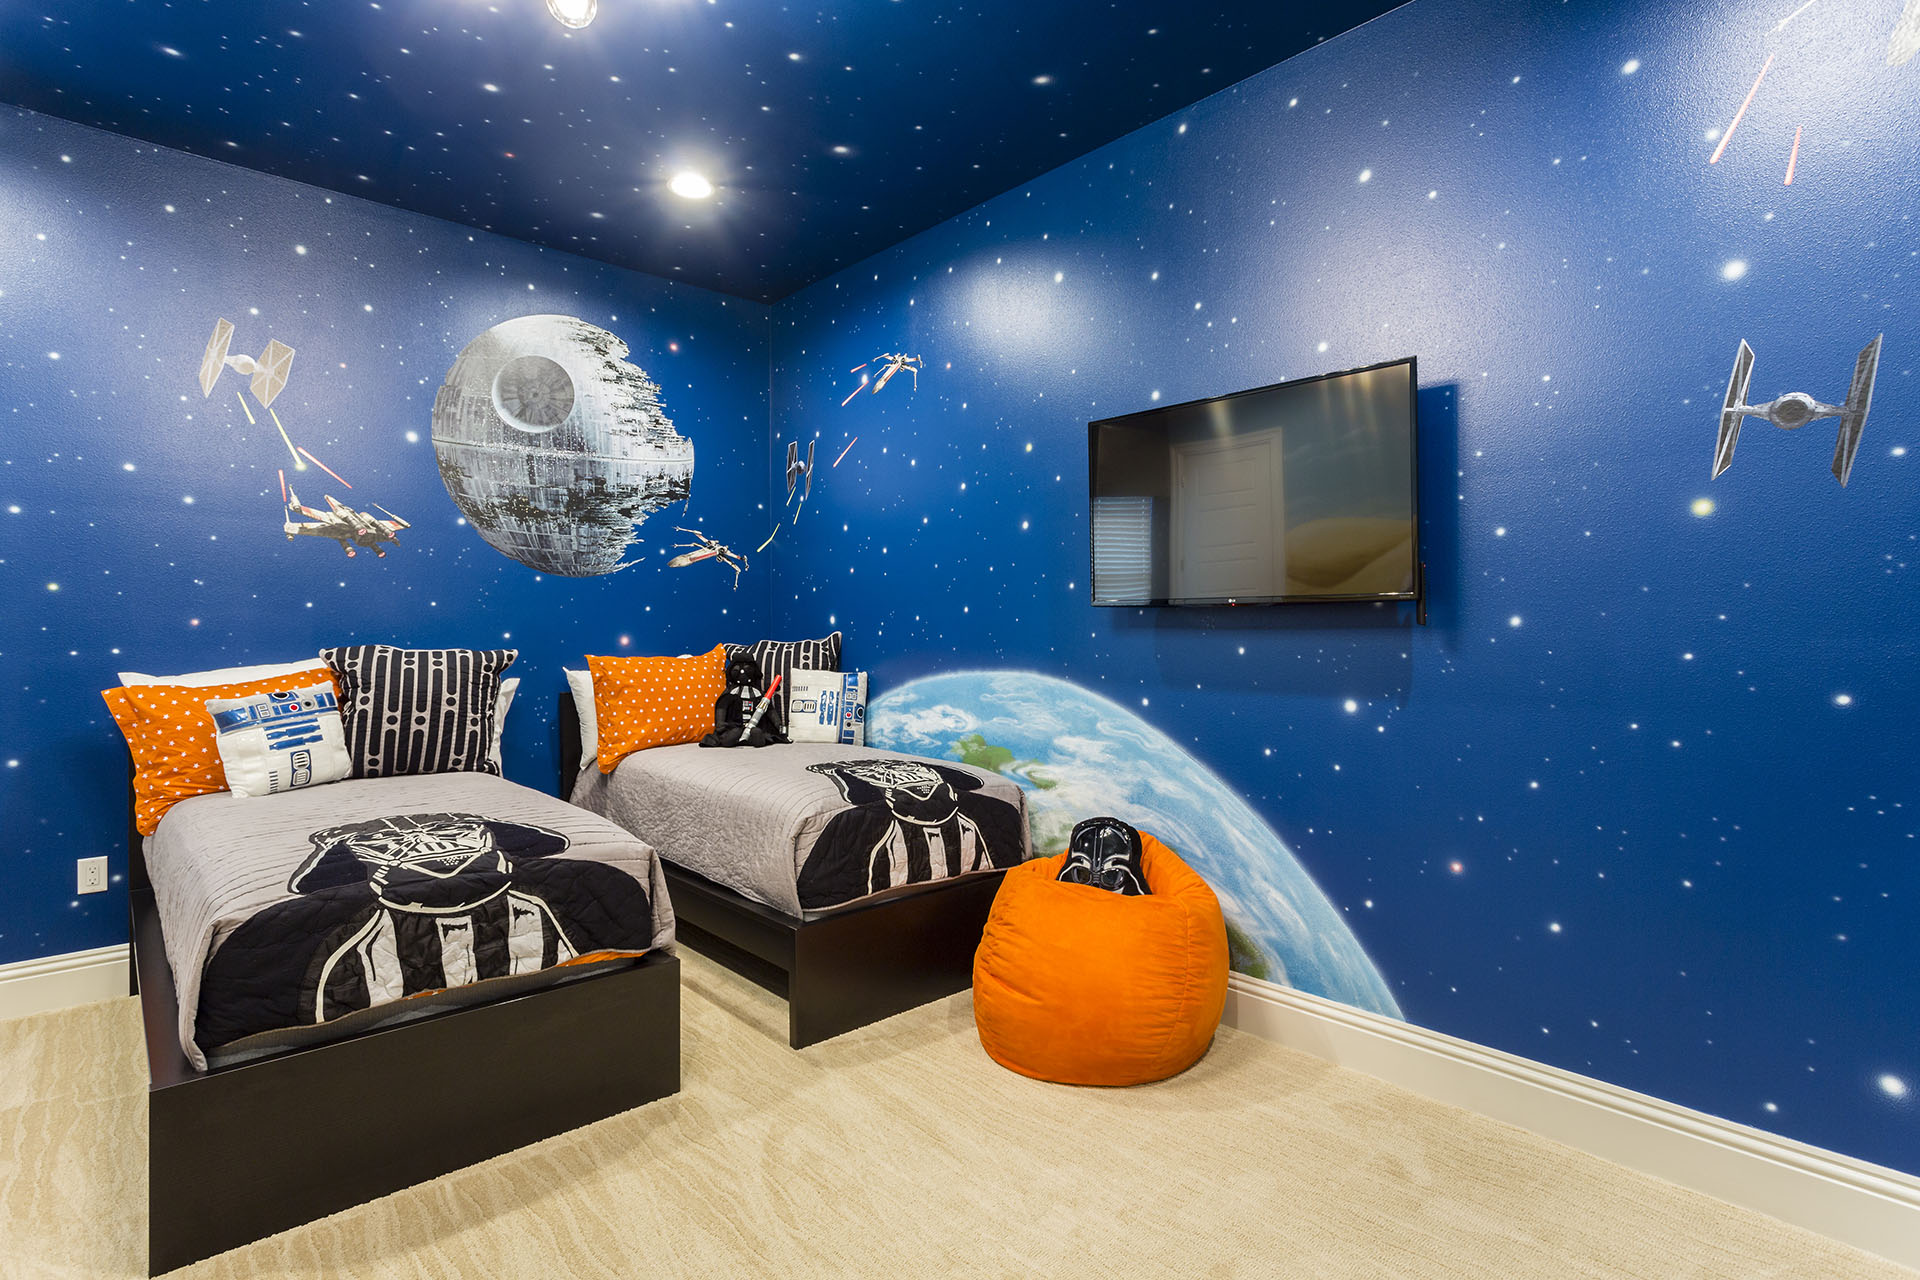 Star Wars Themed Bedroom Ideas Harry Lim 39s Photography Blog